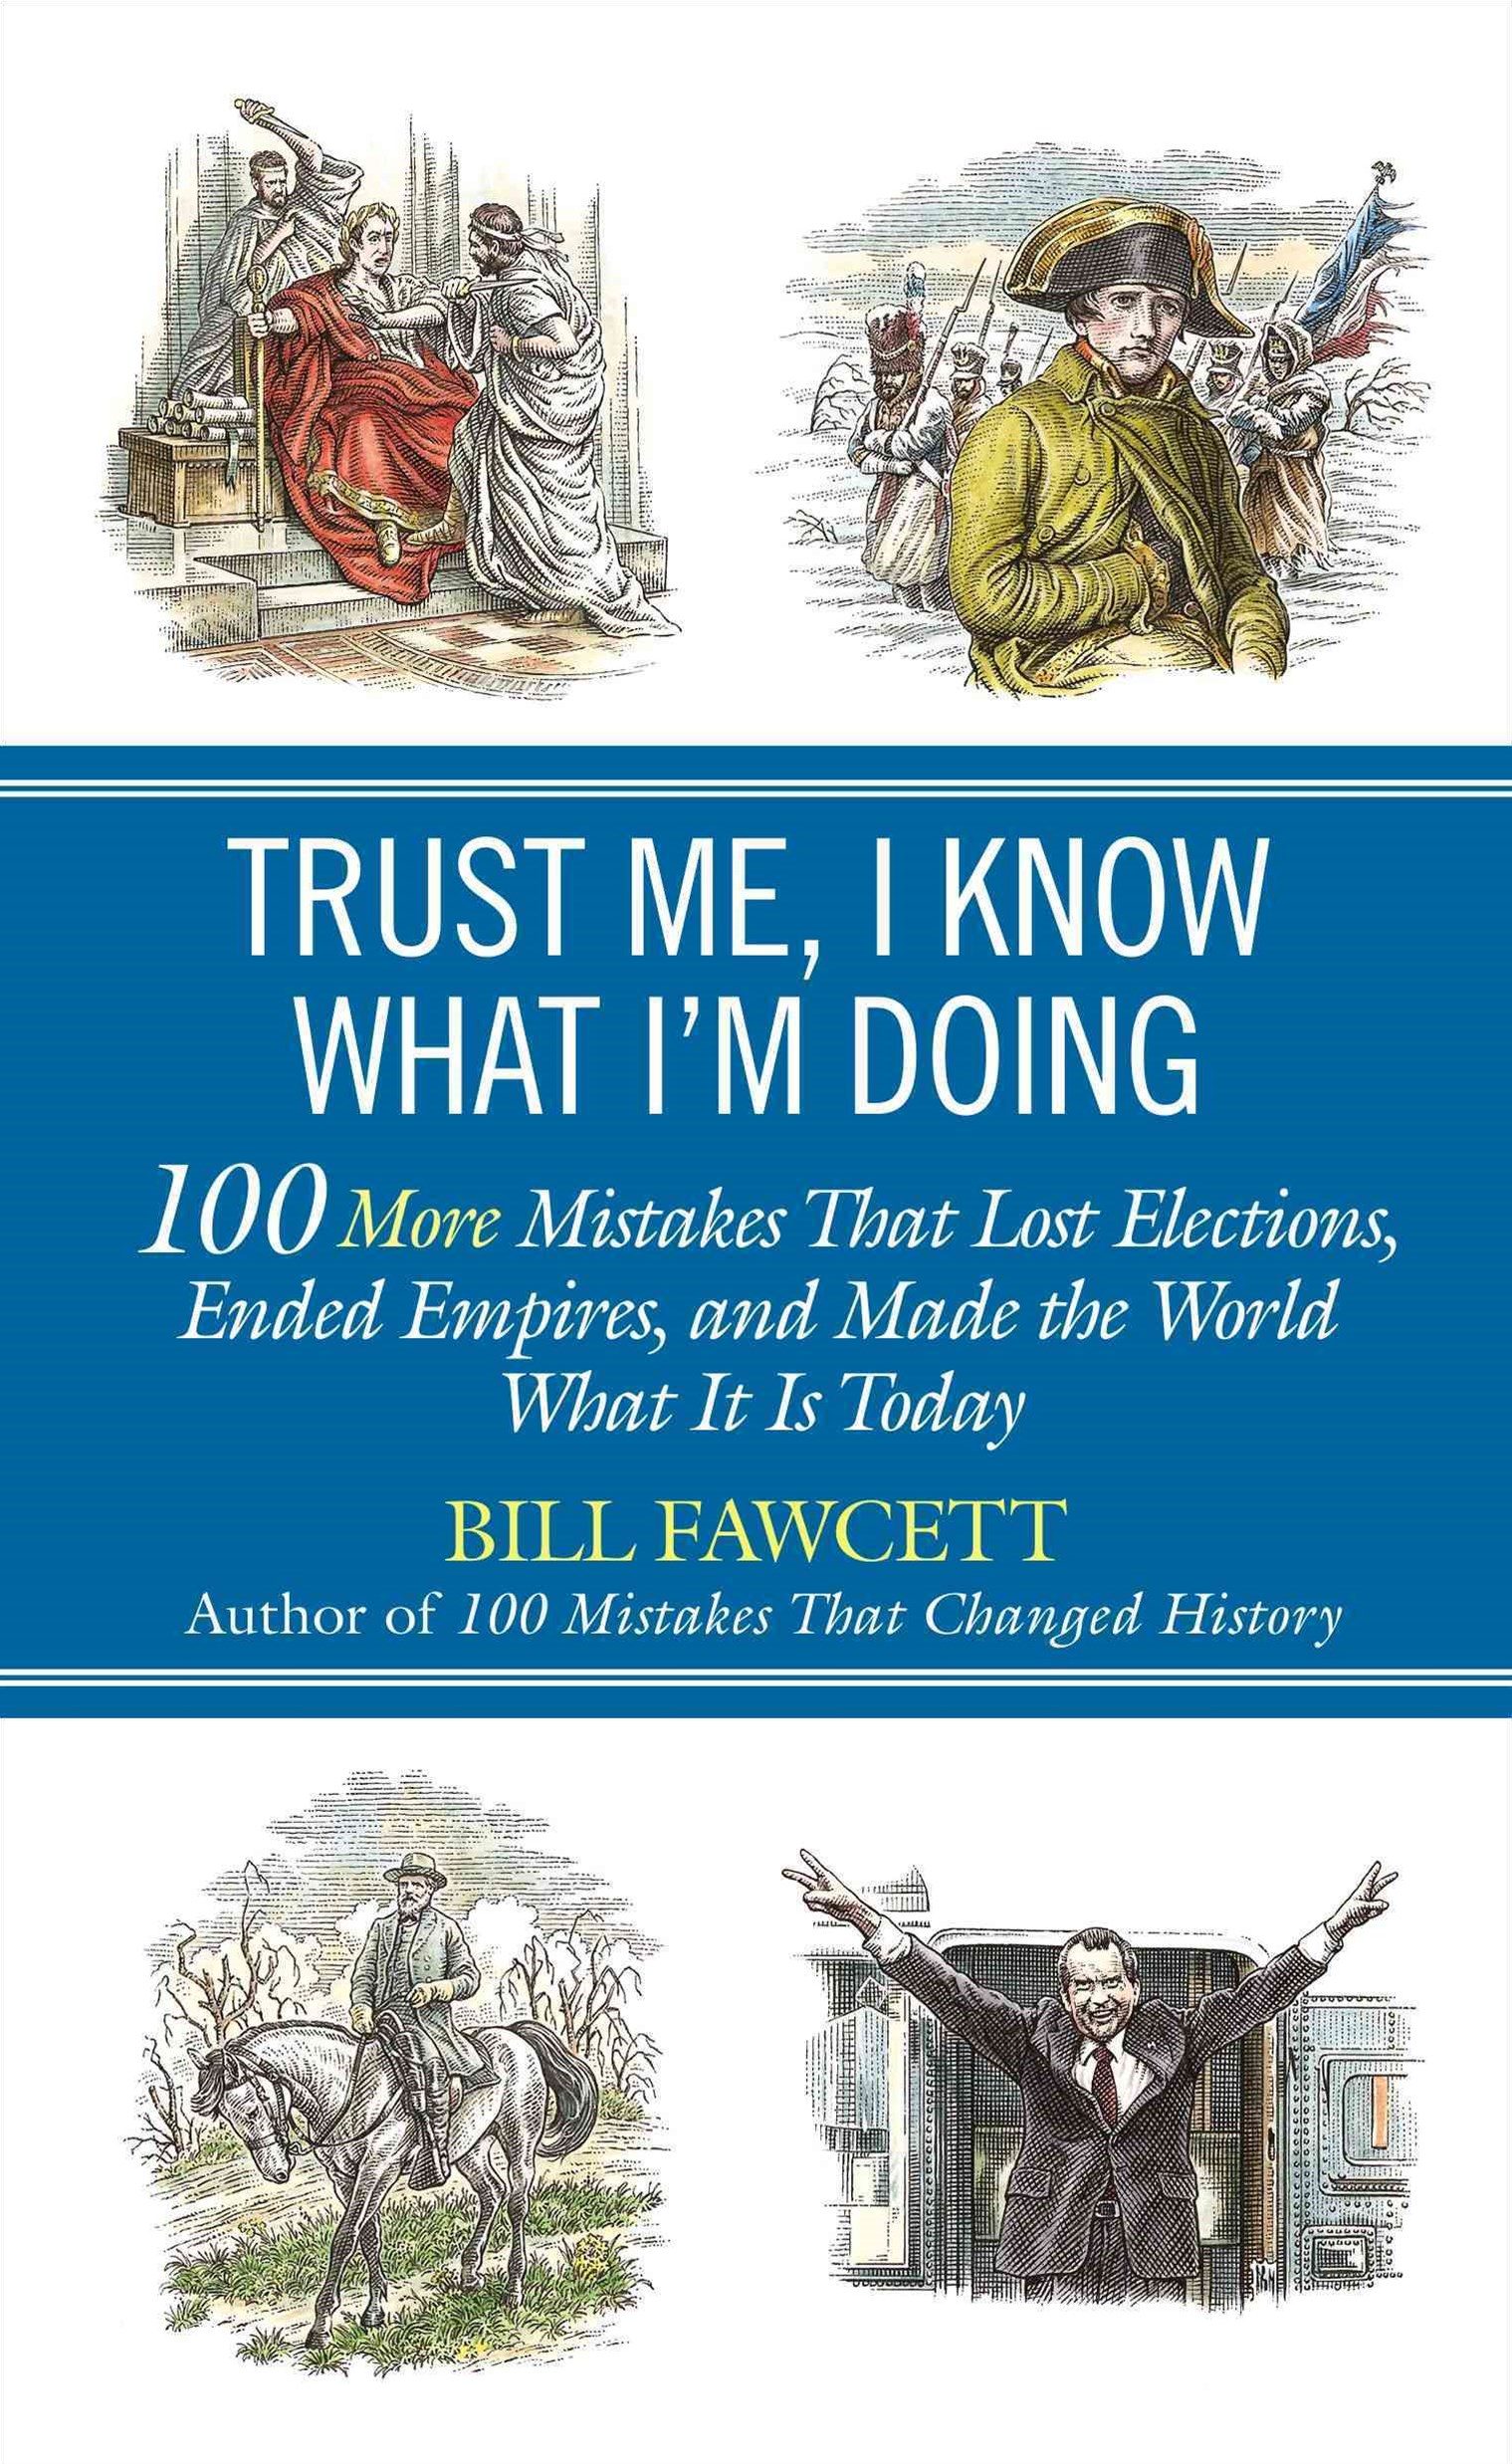 Trust Me, I Know What I'm Doing: 100 More Mistakes That LostElections, Ended Empires, And Made The World What It Is Toda